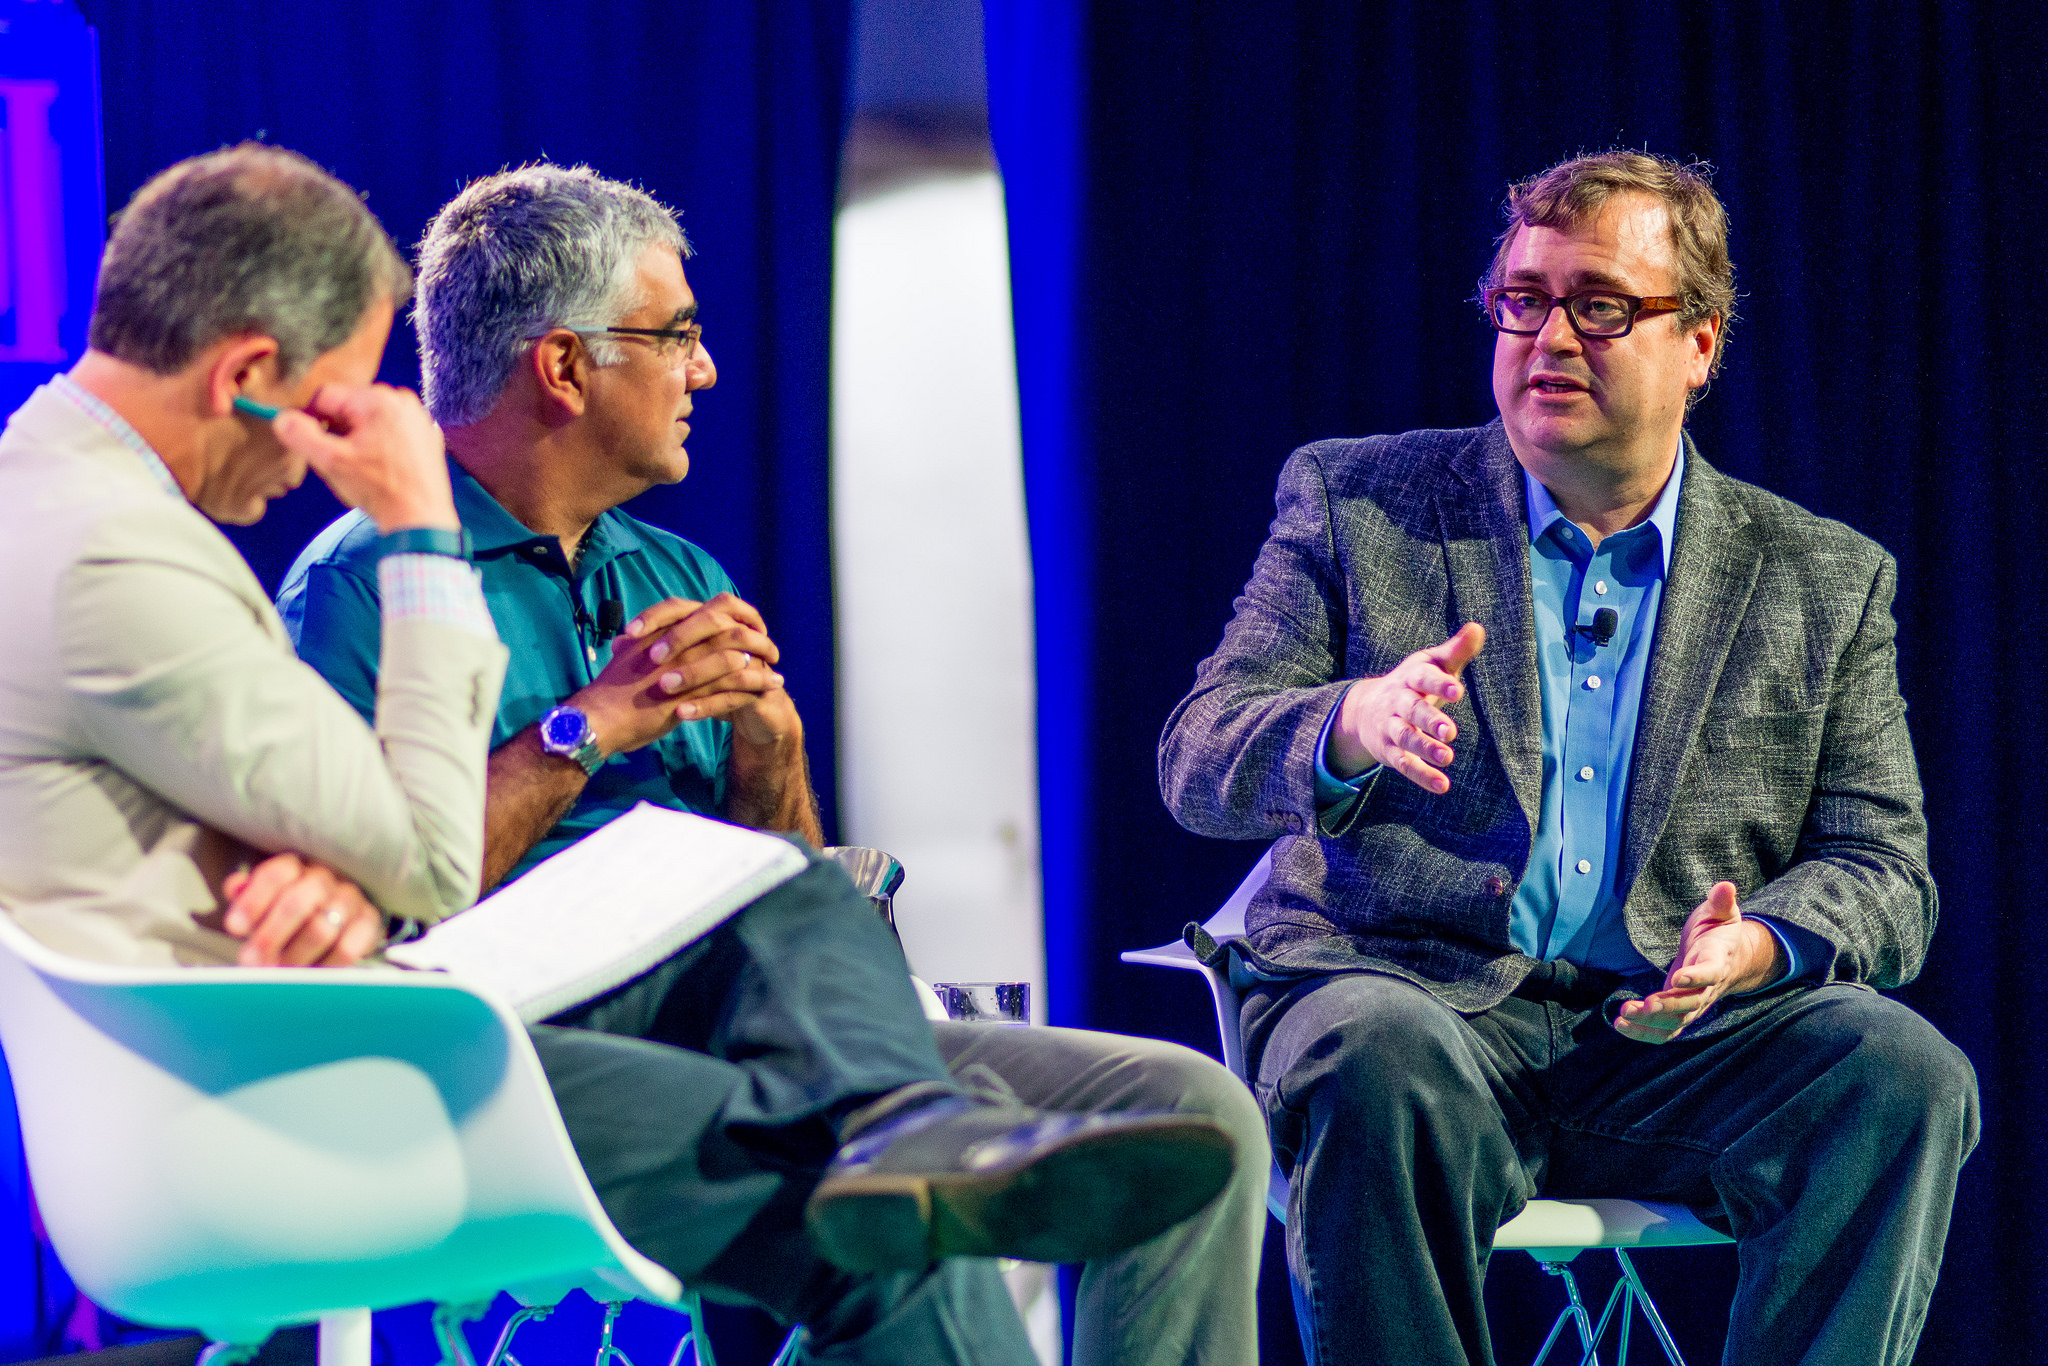 Reid Hoffman (r) at Fortune Brainstorm Tech